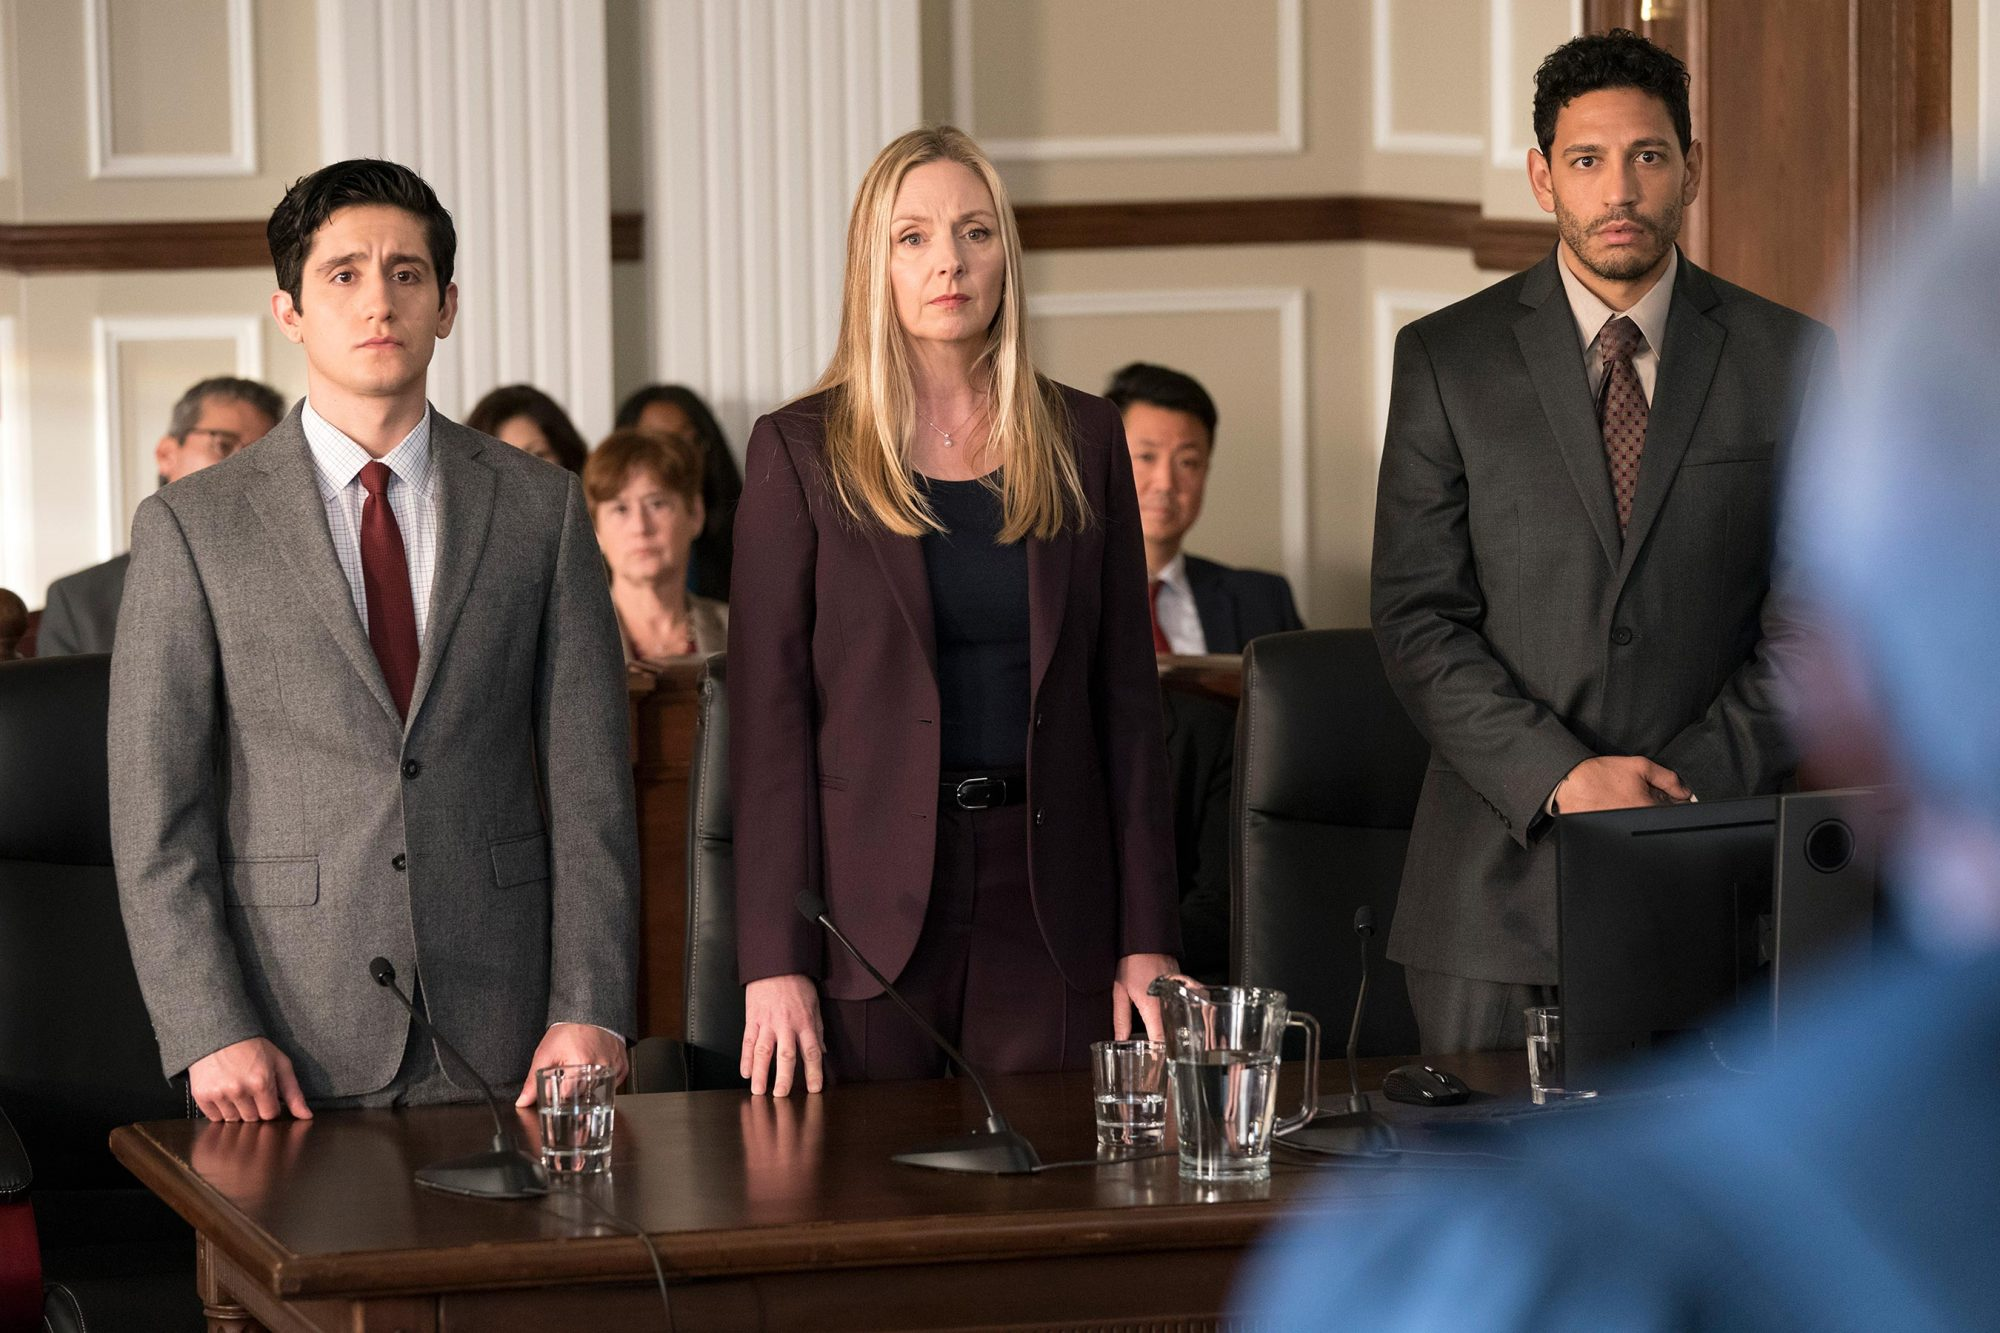 WESAM KEESH, HOPE DAVIS, CHRISTOPHER RIVAS